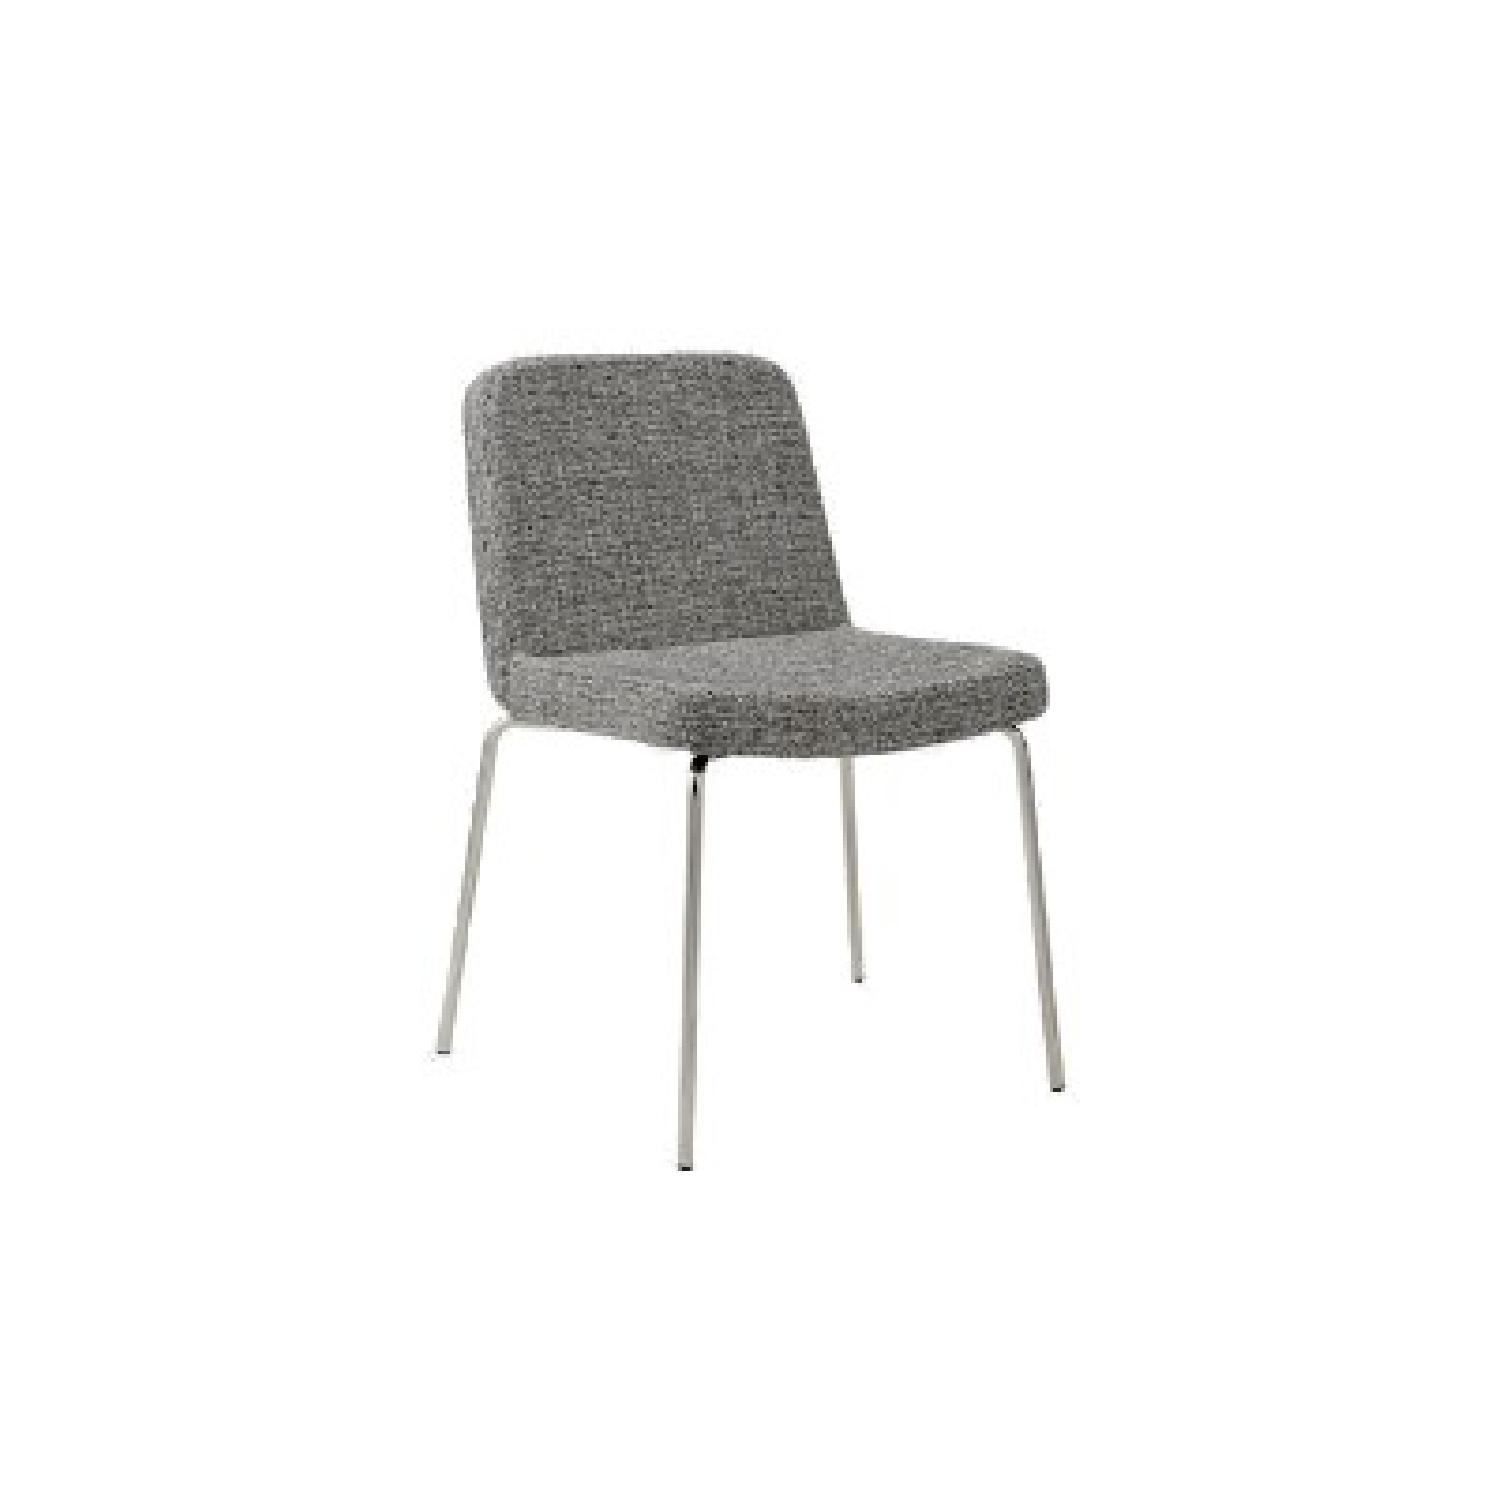 CB2 Grey Tweed & Chrome Dining Chairs